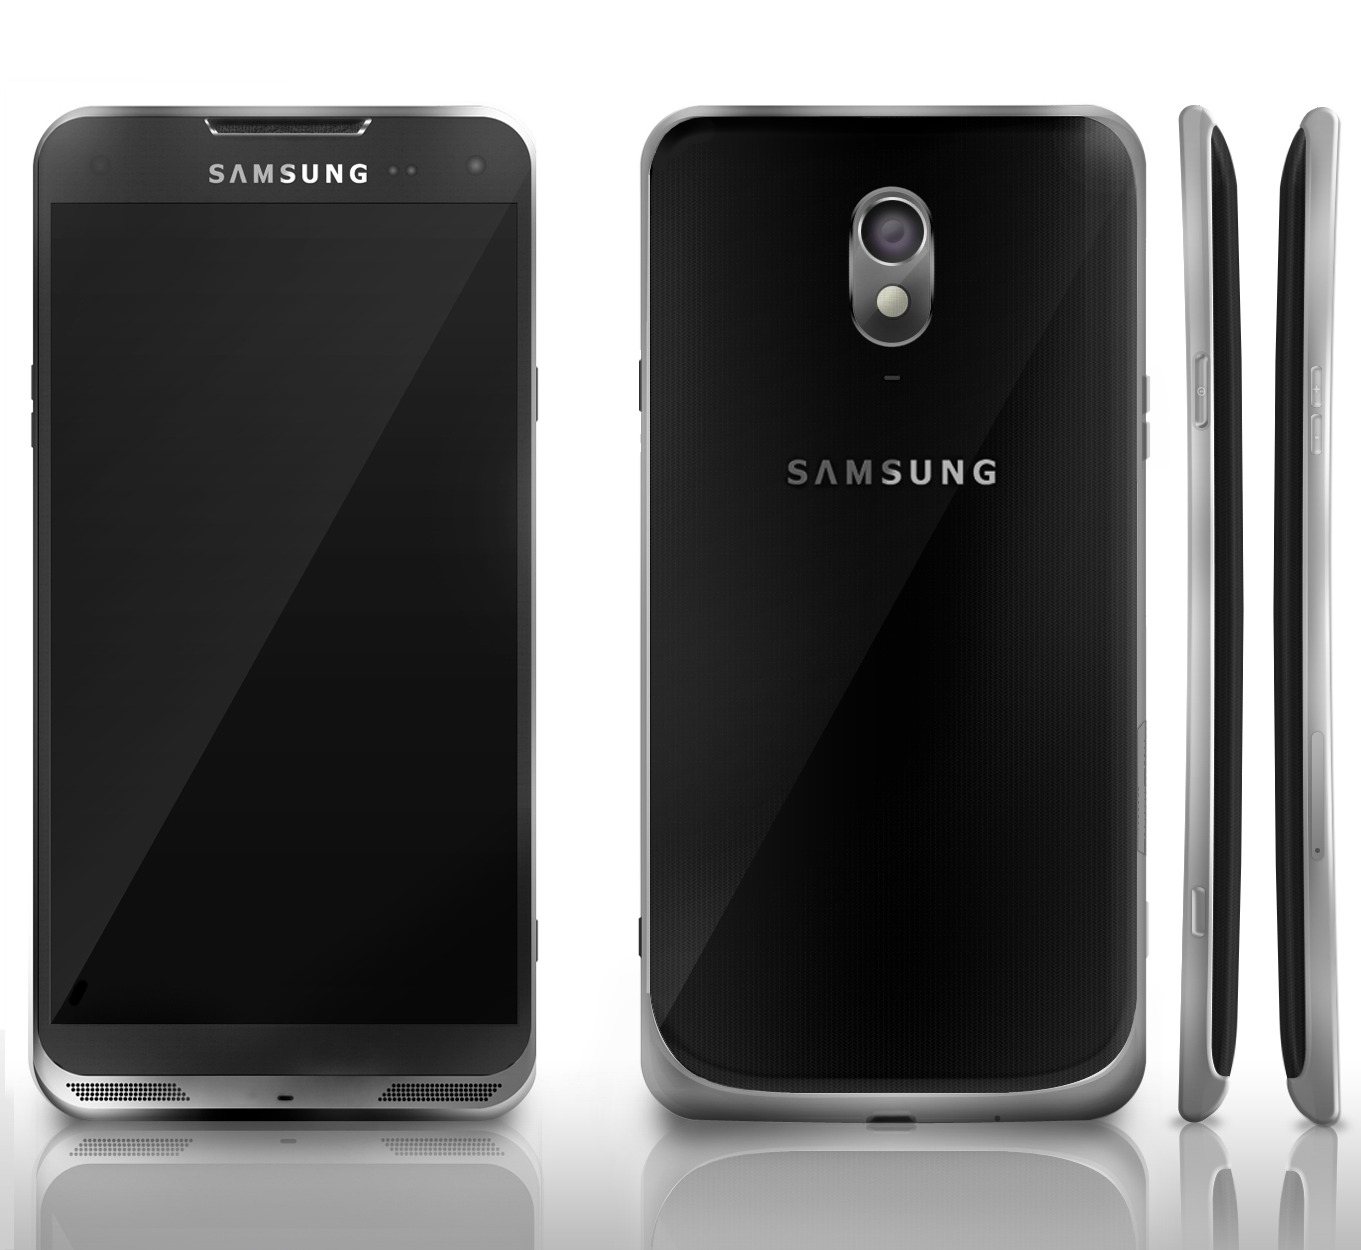 ... York.let's take a look at All pictures leaked for Samsung Galaxy S4